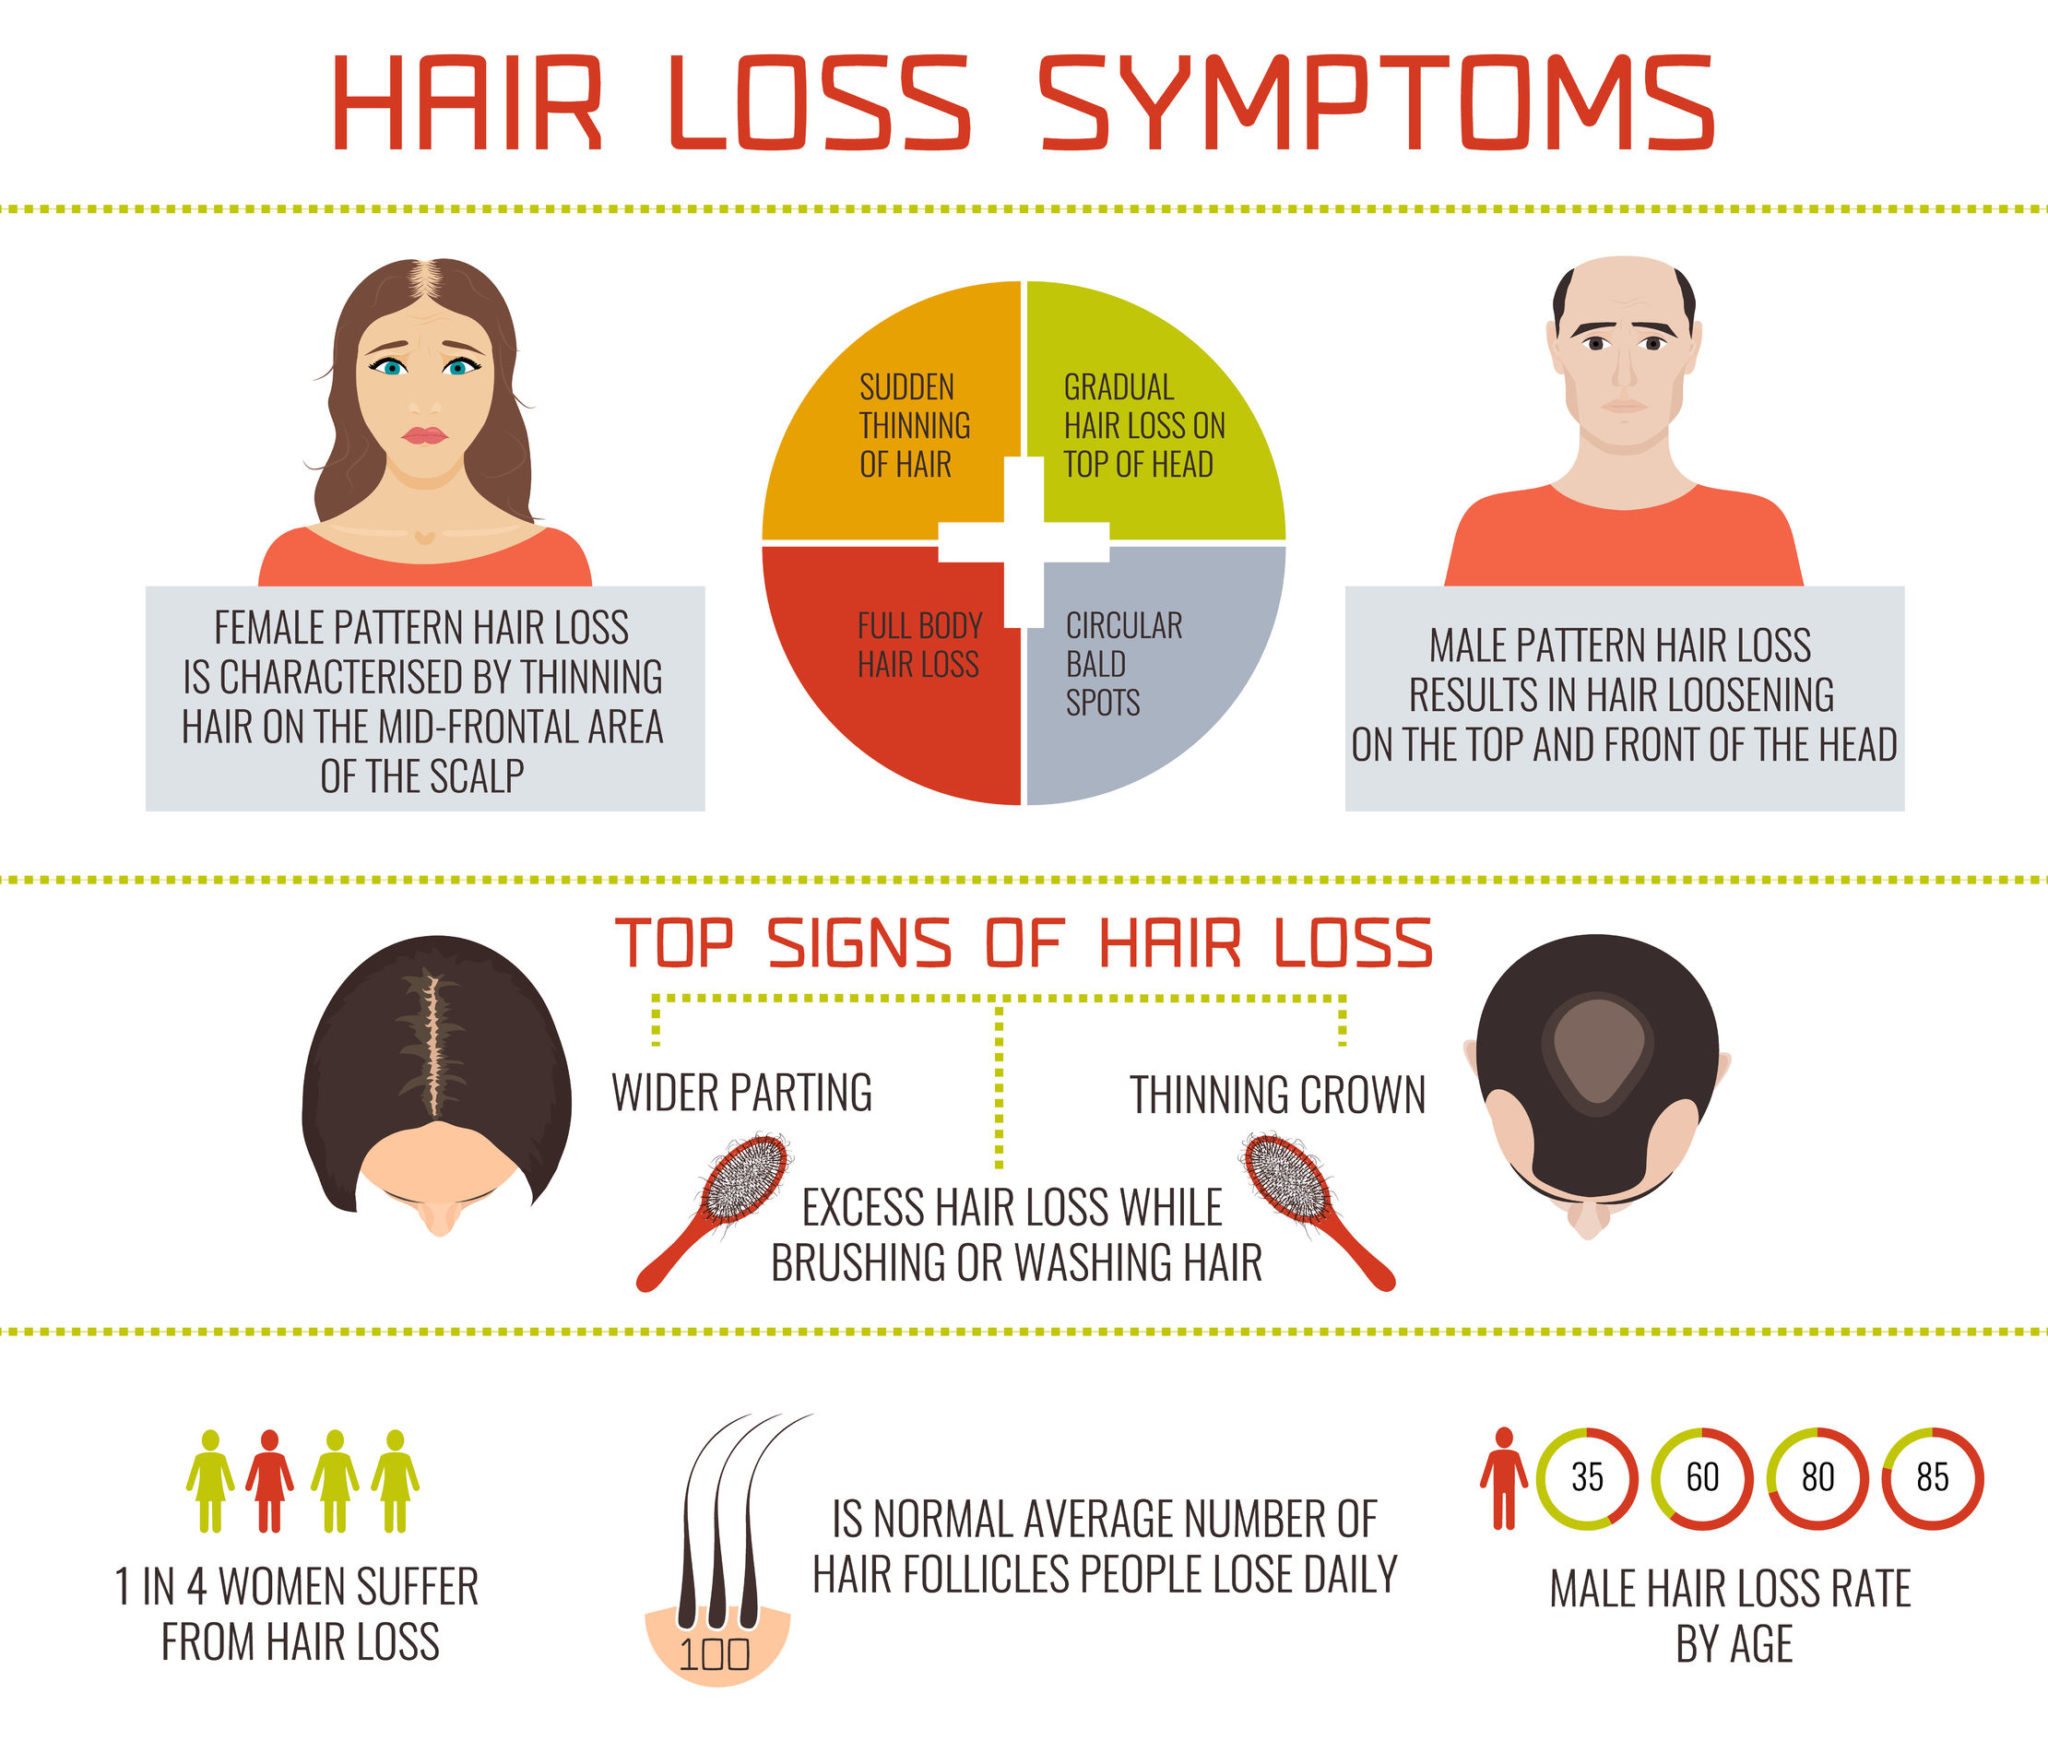 What Are the Symptoms of Hair Loss